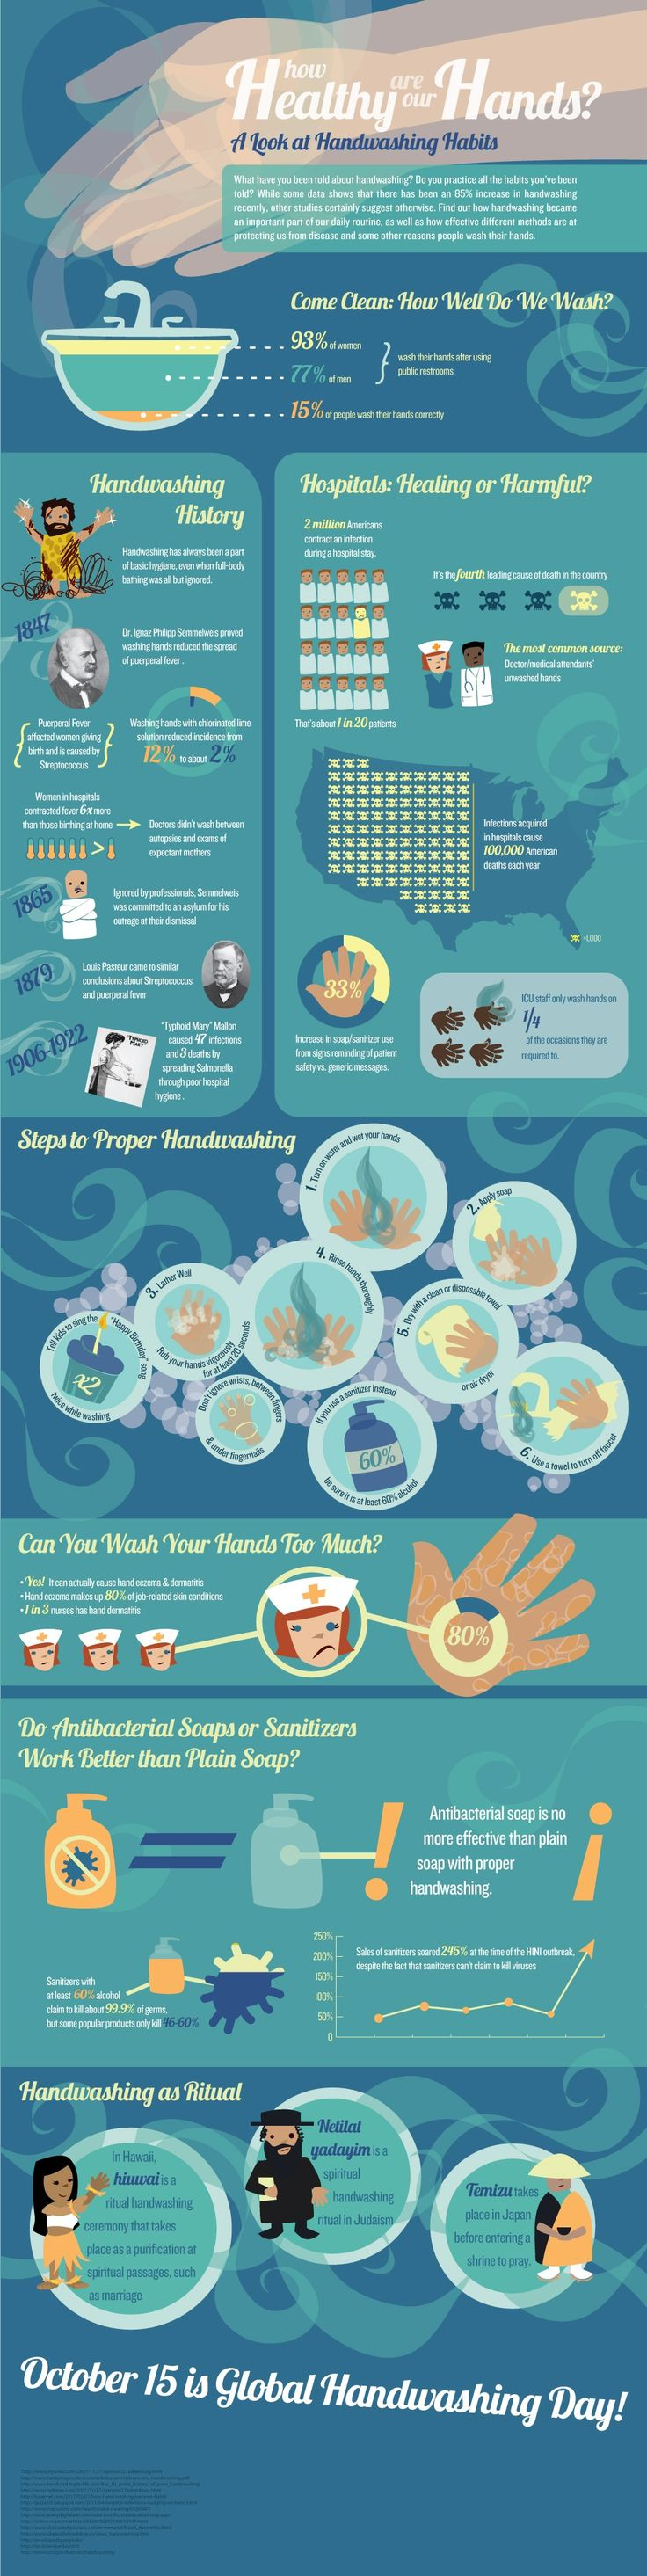 Do you get sick frequently? The simple way of protecting yourself from getting sick is washing your hands. The diseases which can spread through unwashed hands include strep, hepatitis, flu, colds, etc. You should wash your hands every time after using bathroom. This infographic poster help you let know all about hand wash. It talks about the history of hand washing, infections in hospitals as well as provides the proper way for hand washing.